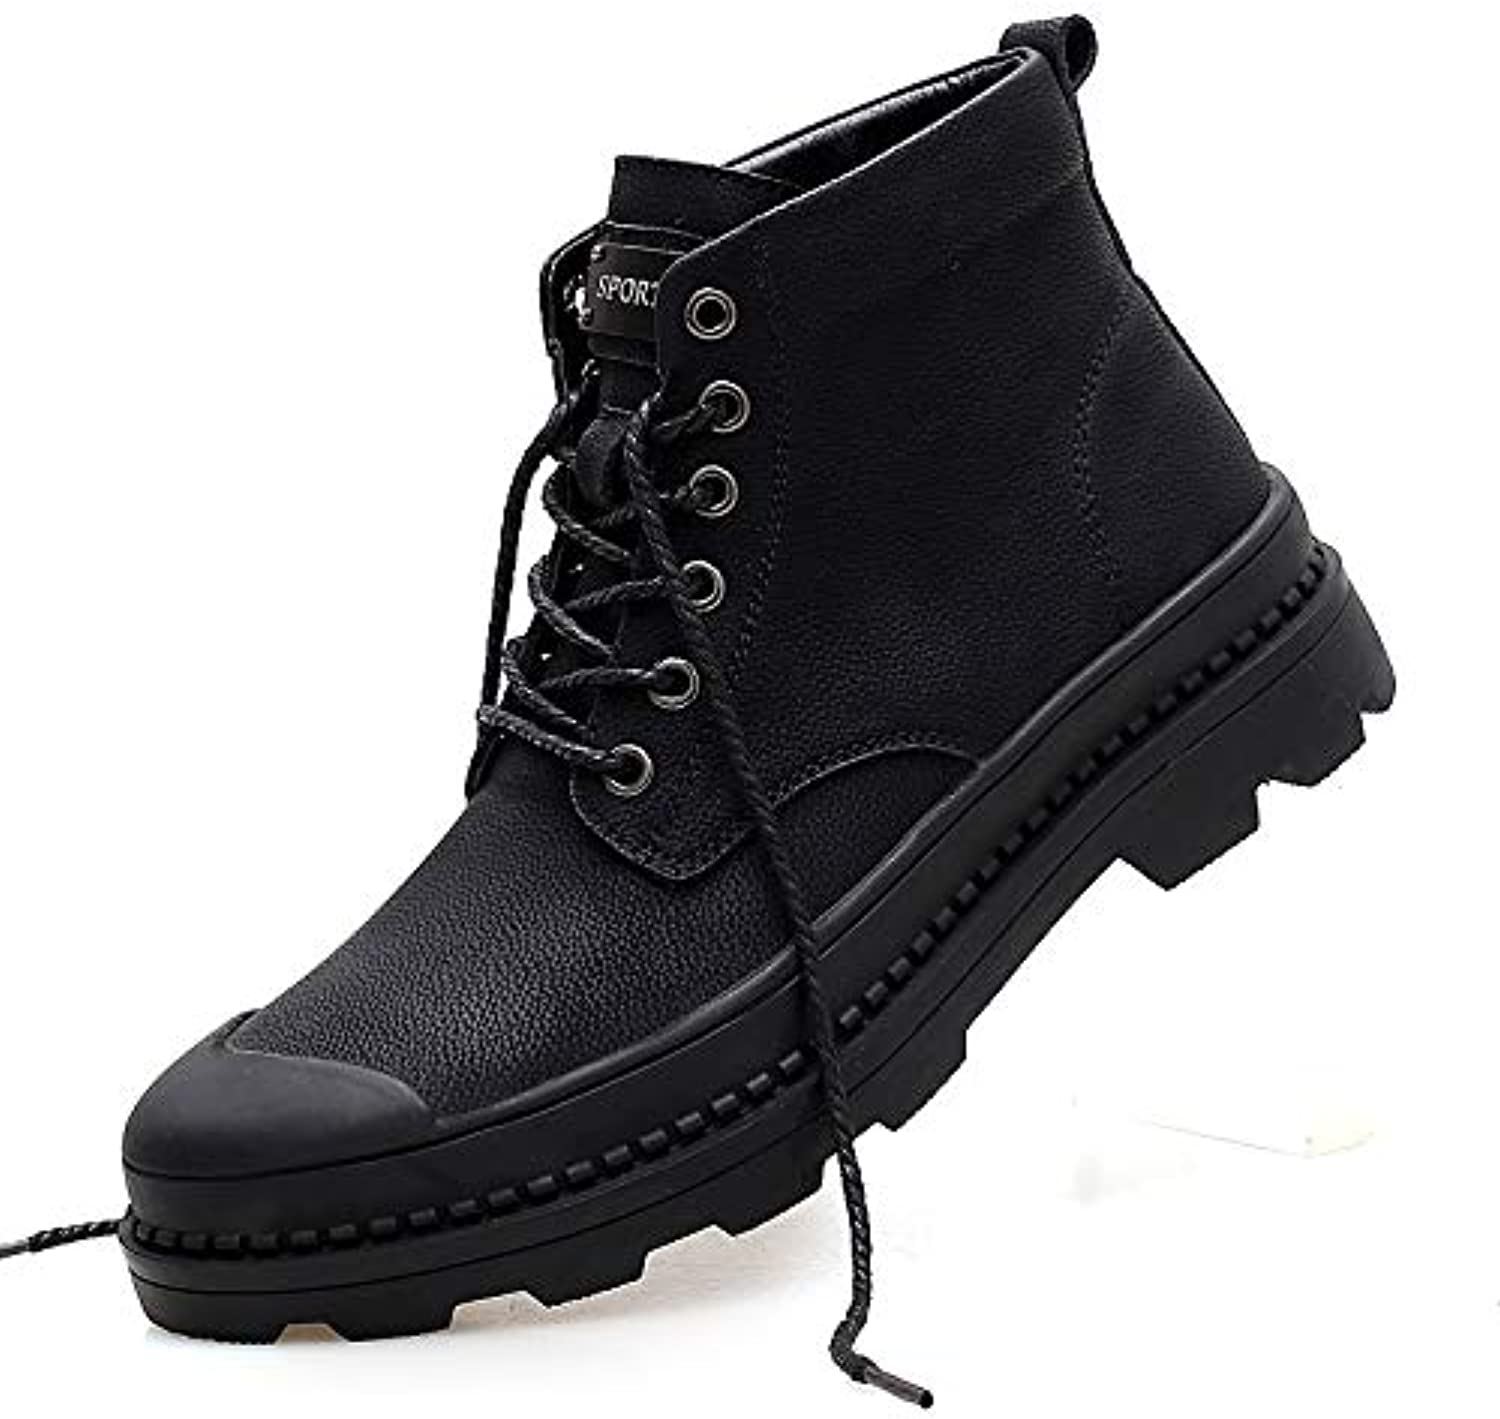 LOVDRAM Boots Men's Martin Boots Men'S Leather Boots Wild Men'S High Boots Autumn Casual Tooling Boots Men